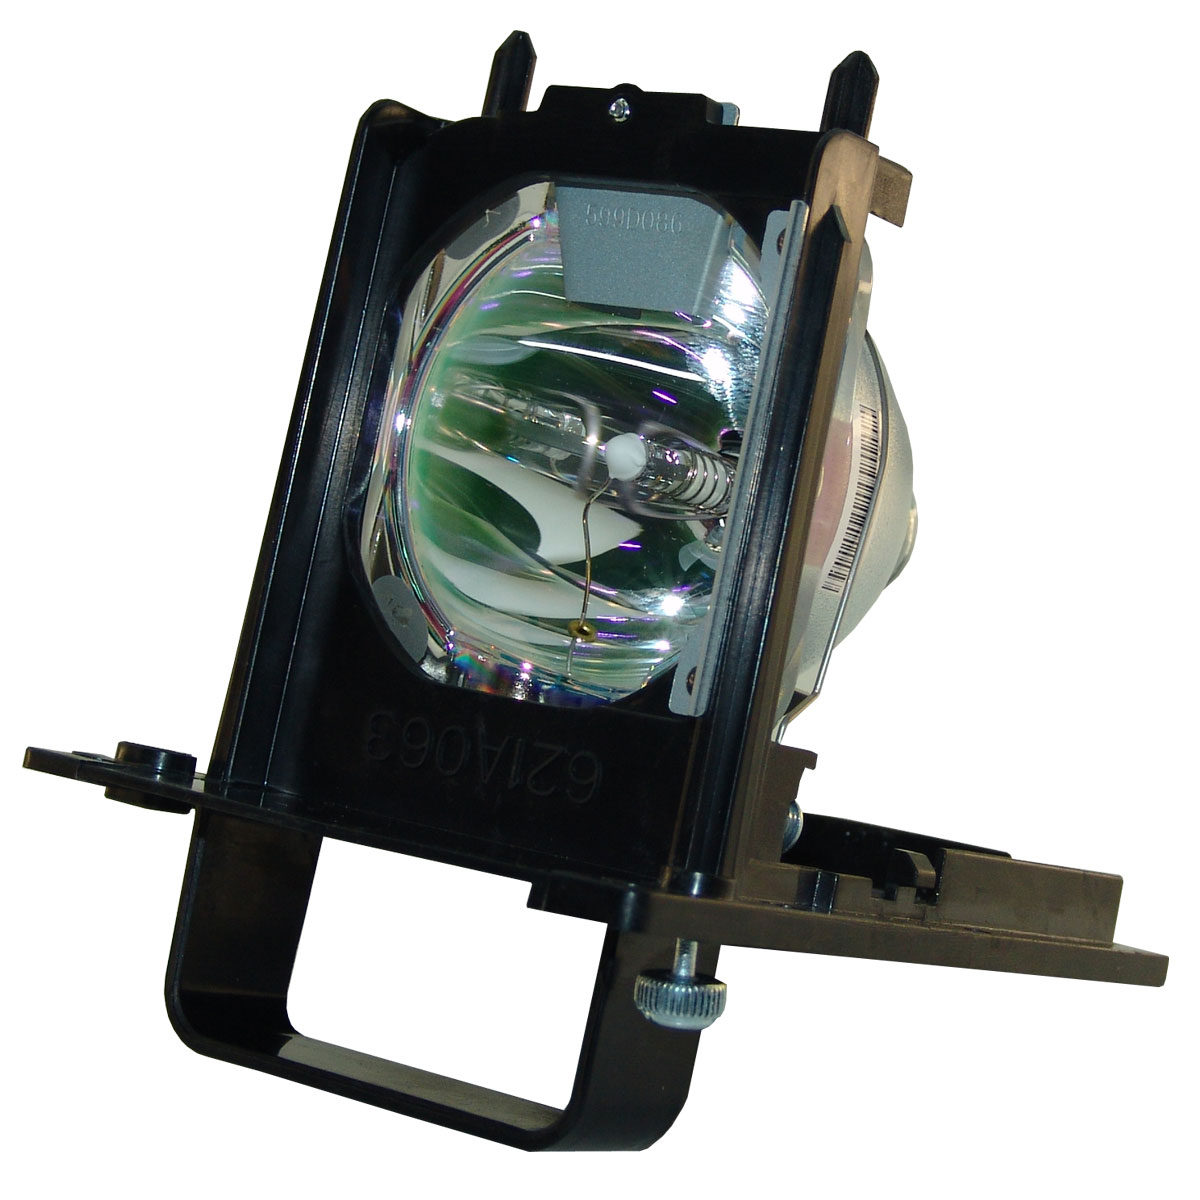 Mitsubishi Projection Tv Bulb Details About Lamp Housing For Mitsubishi Wd 73642 Wd73642 Projection Tv Bulb Dlp